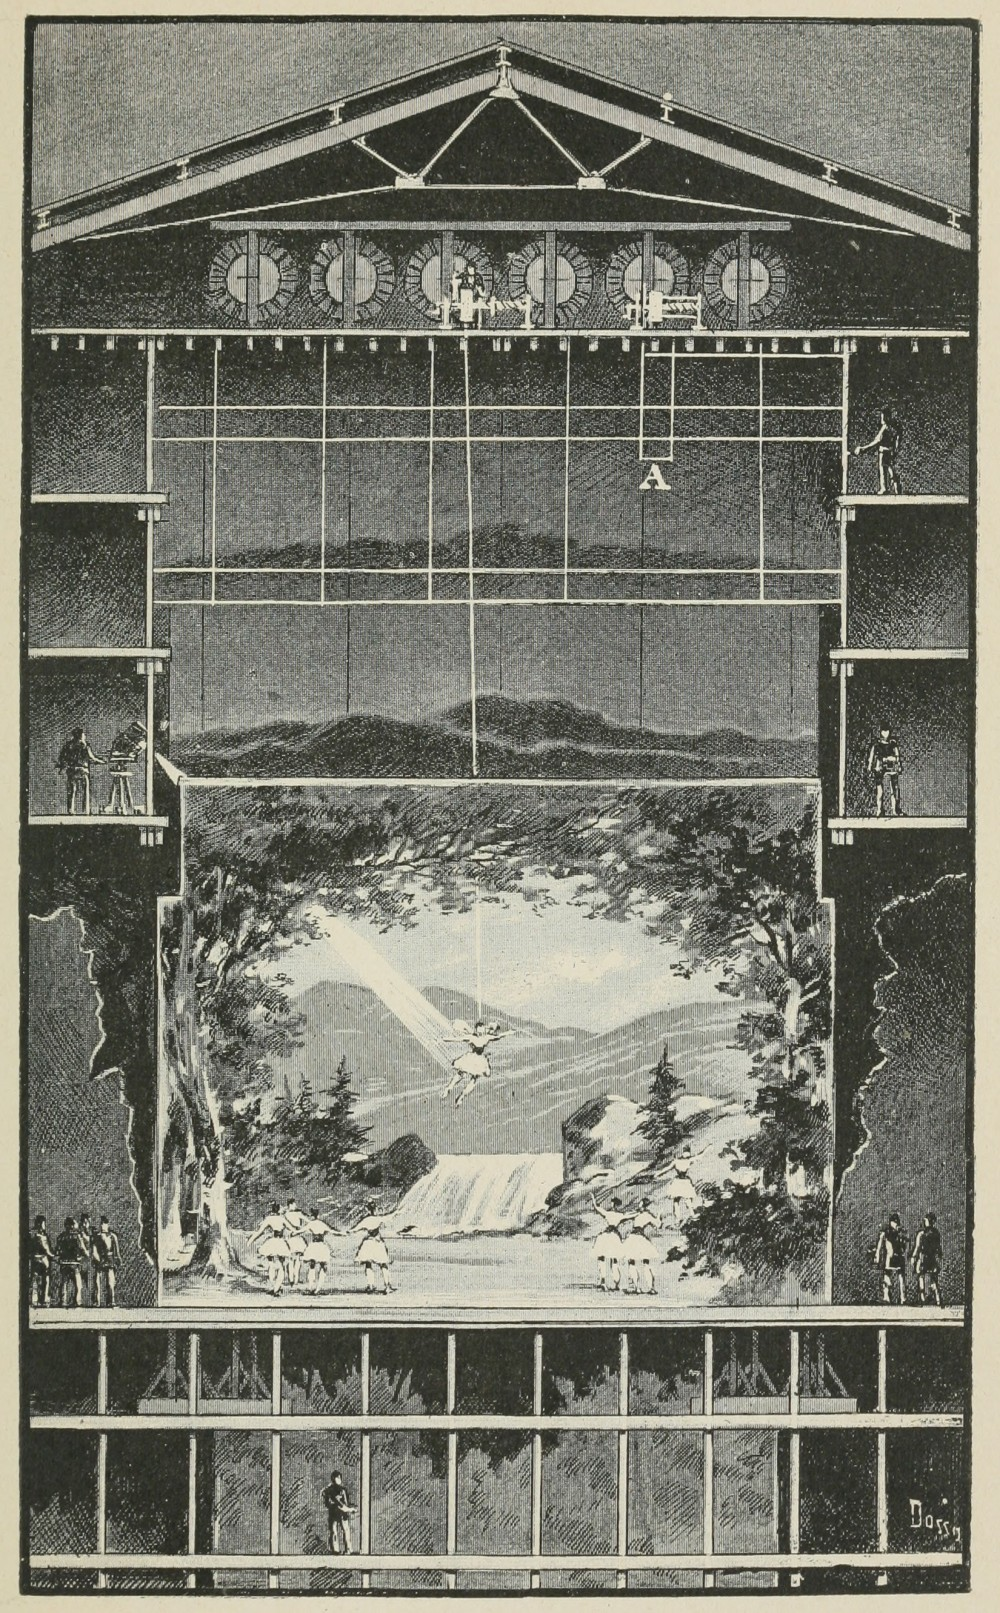 Illustration from Trucs et Decors